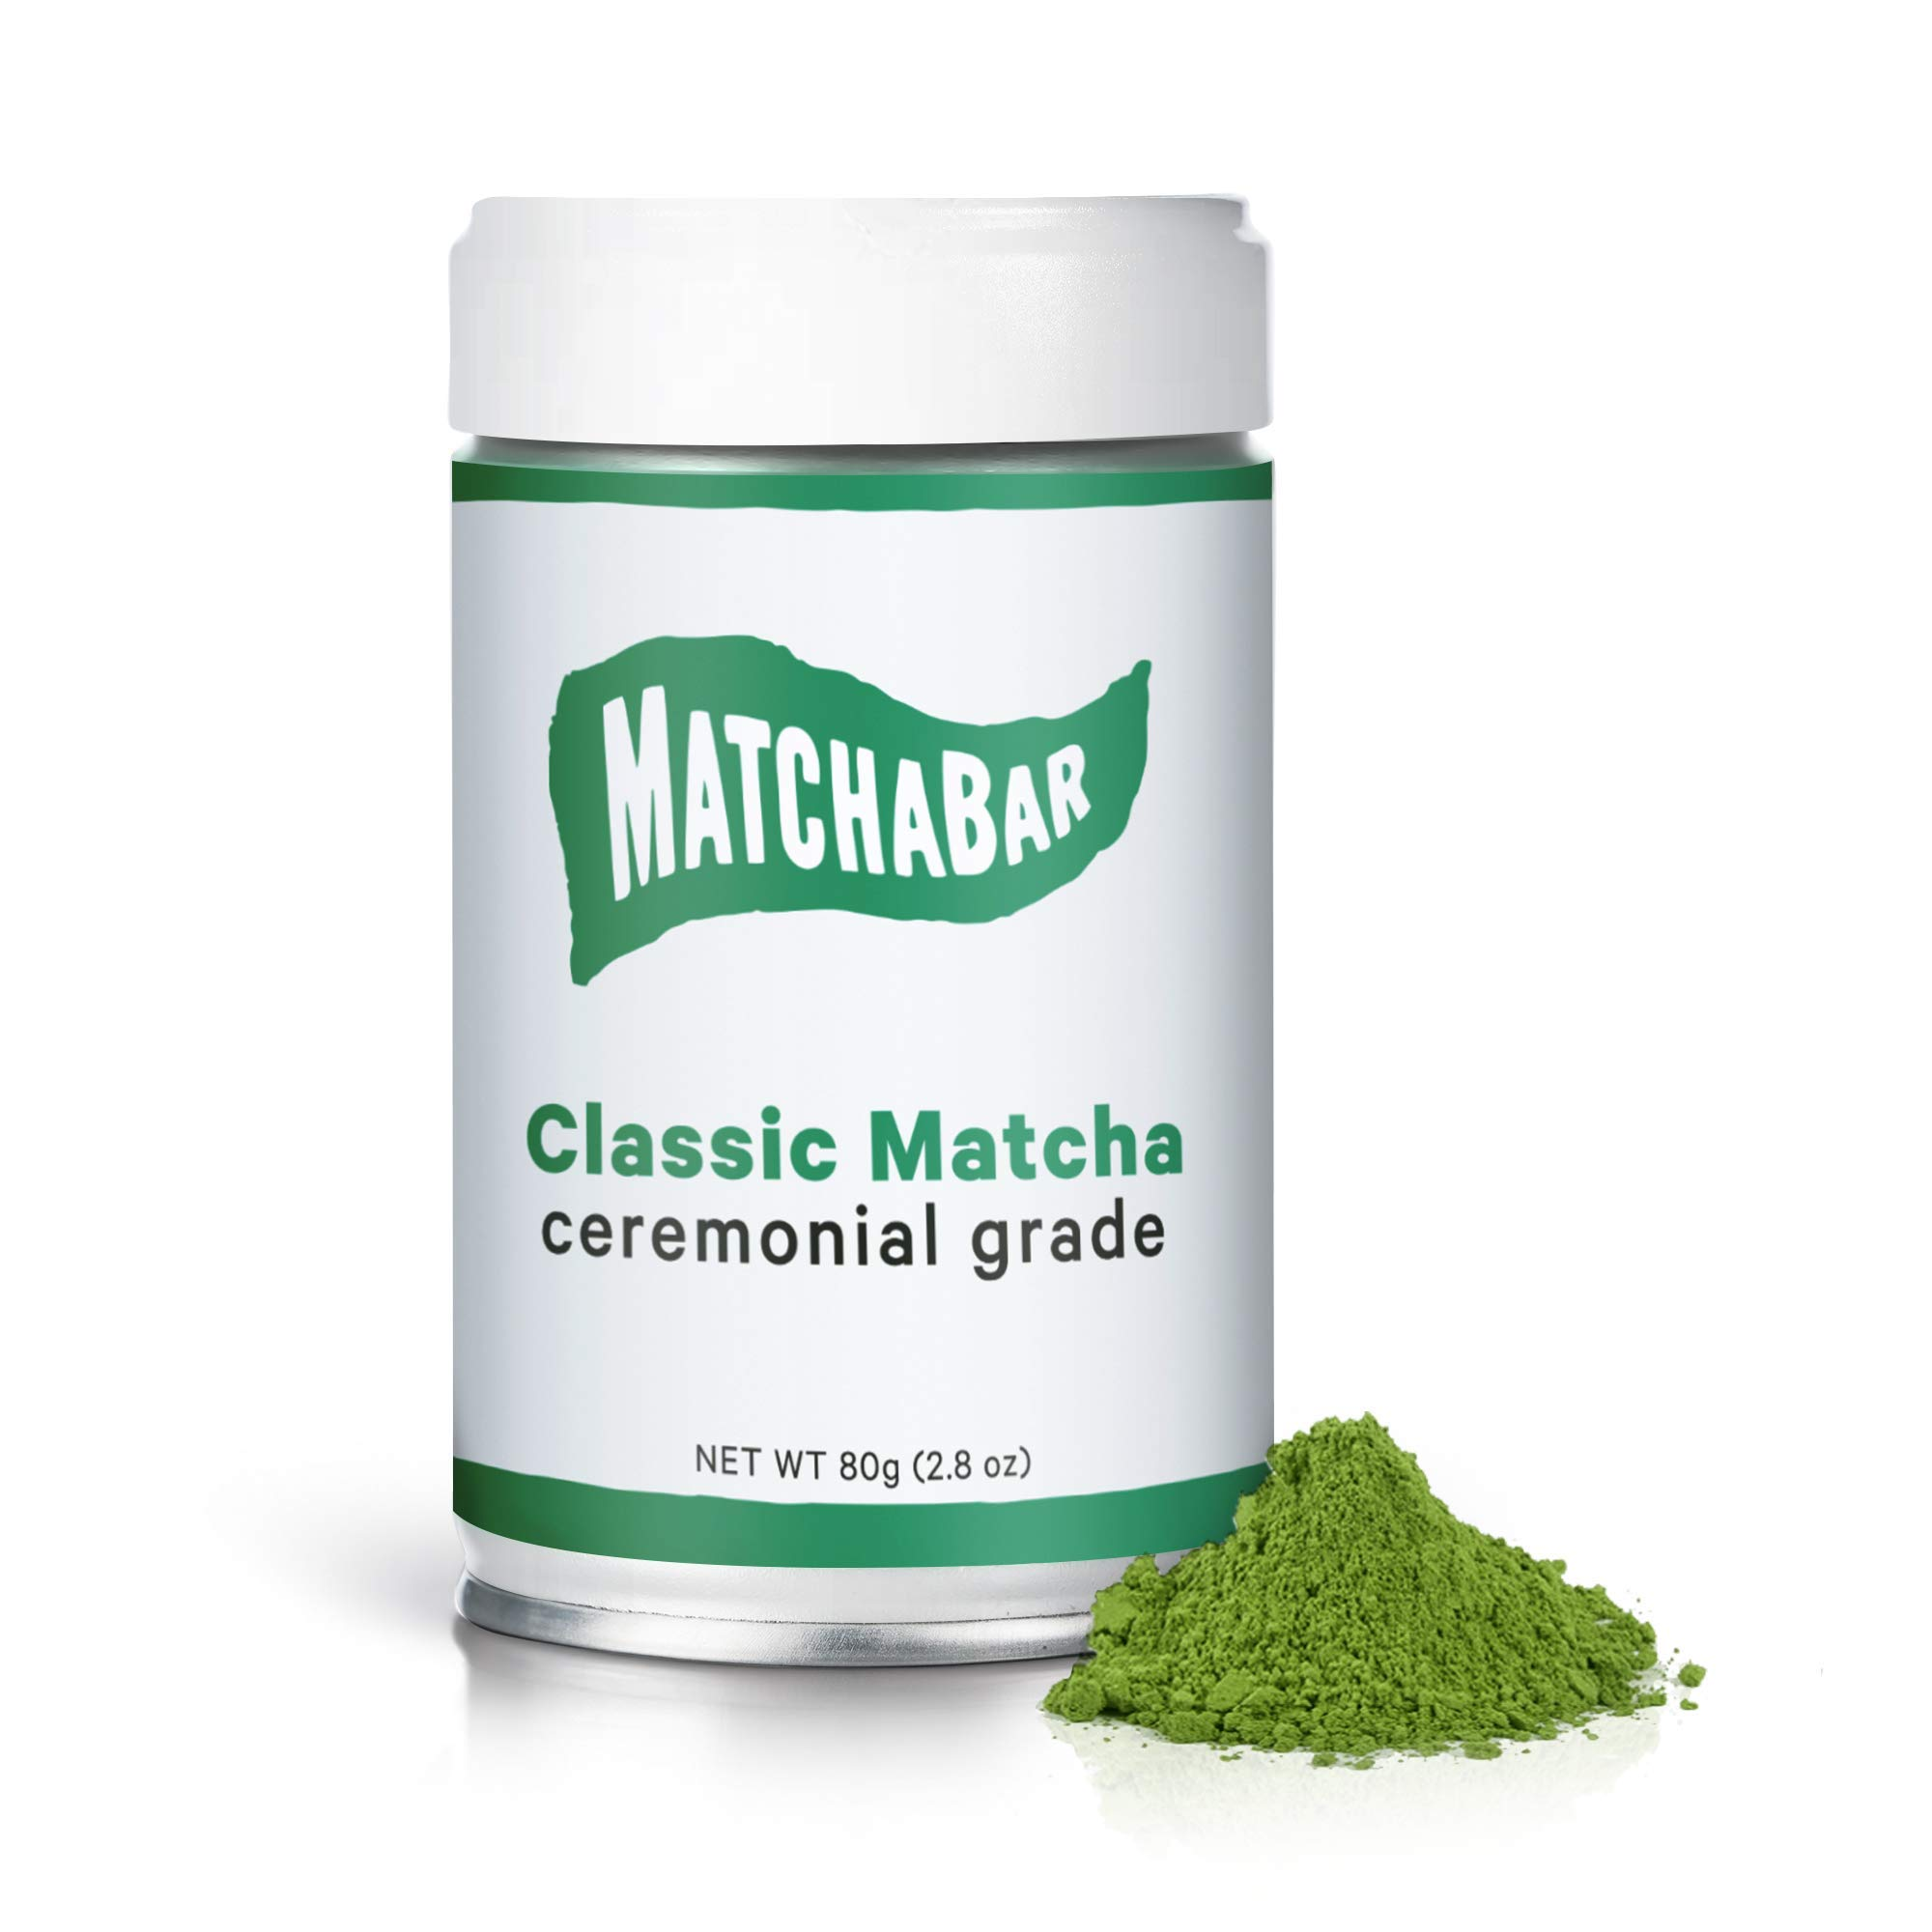 MatchaBar Ceremonial Grade Matcha | Authentic Japanese Tea Powder with Natural Caffeine, Antioxidants, L-Theanine | Hand Selected by Chashi Master | 80g Tin